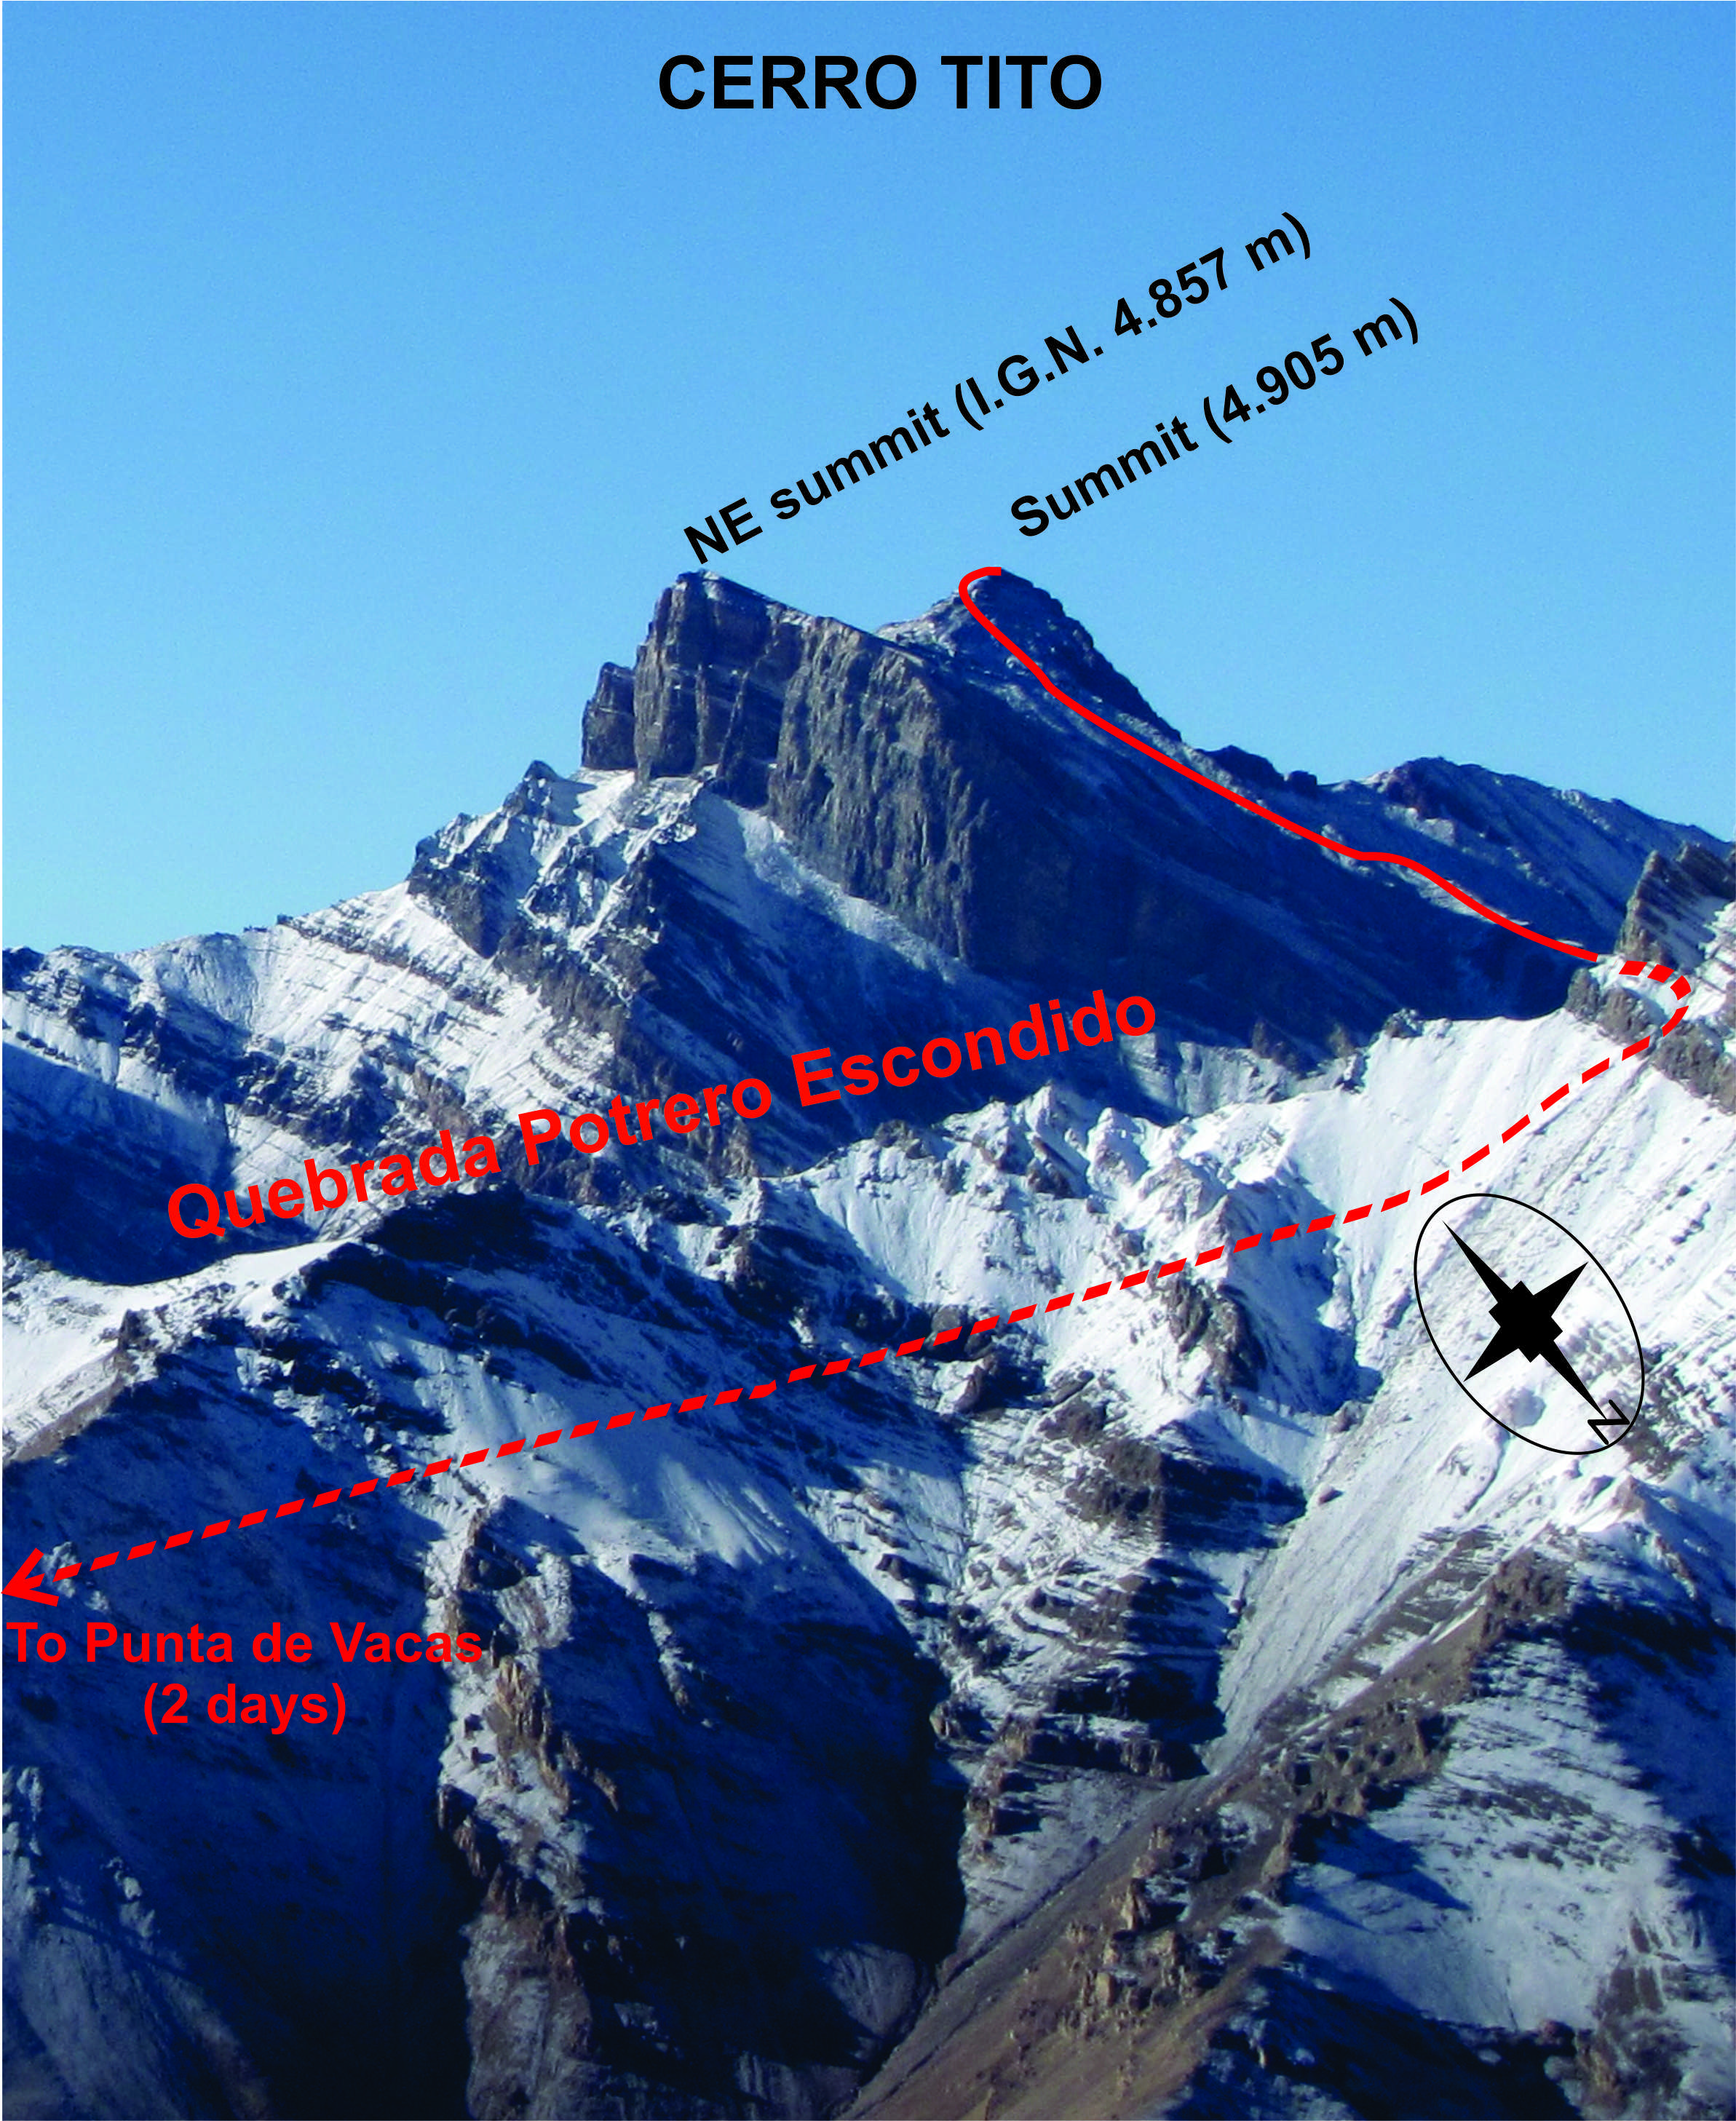 The approach and route up Cerro Tito.